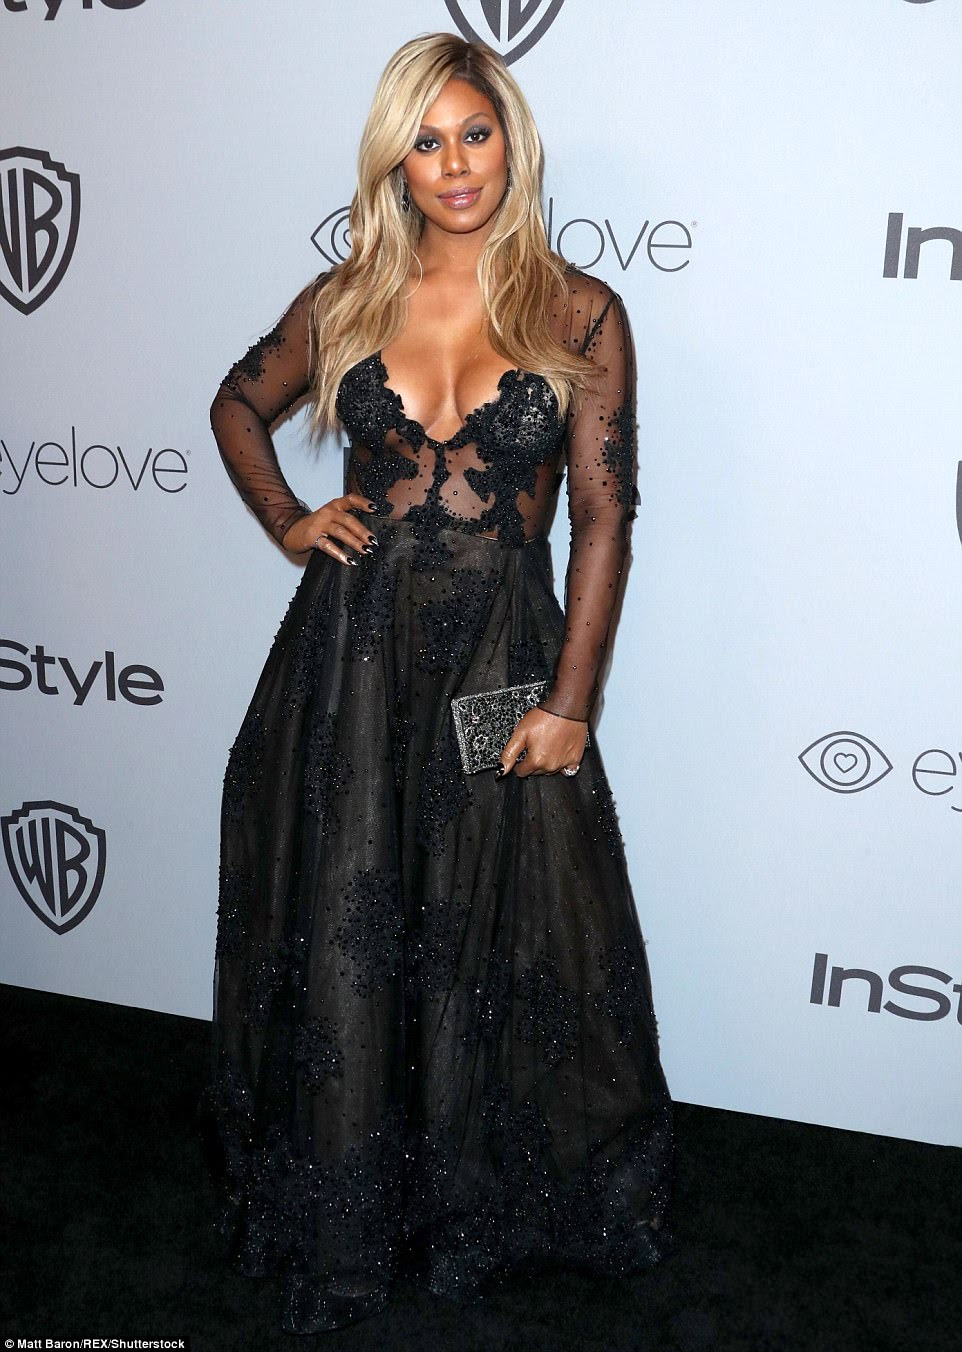 Bombshell: Laverne Cox looked magical in a sparkly gown with sheer bodice and sleeves